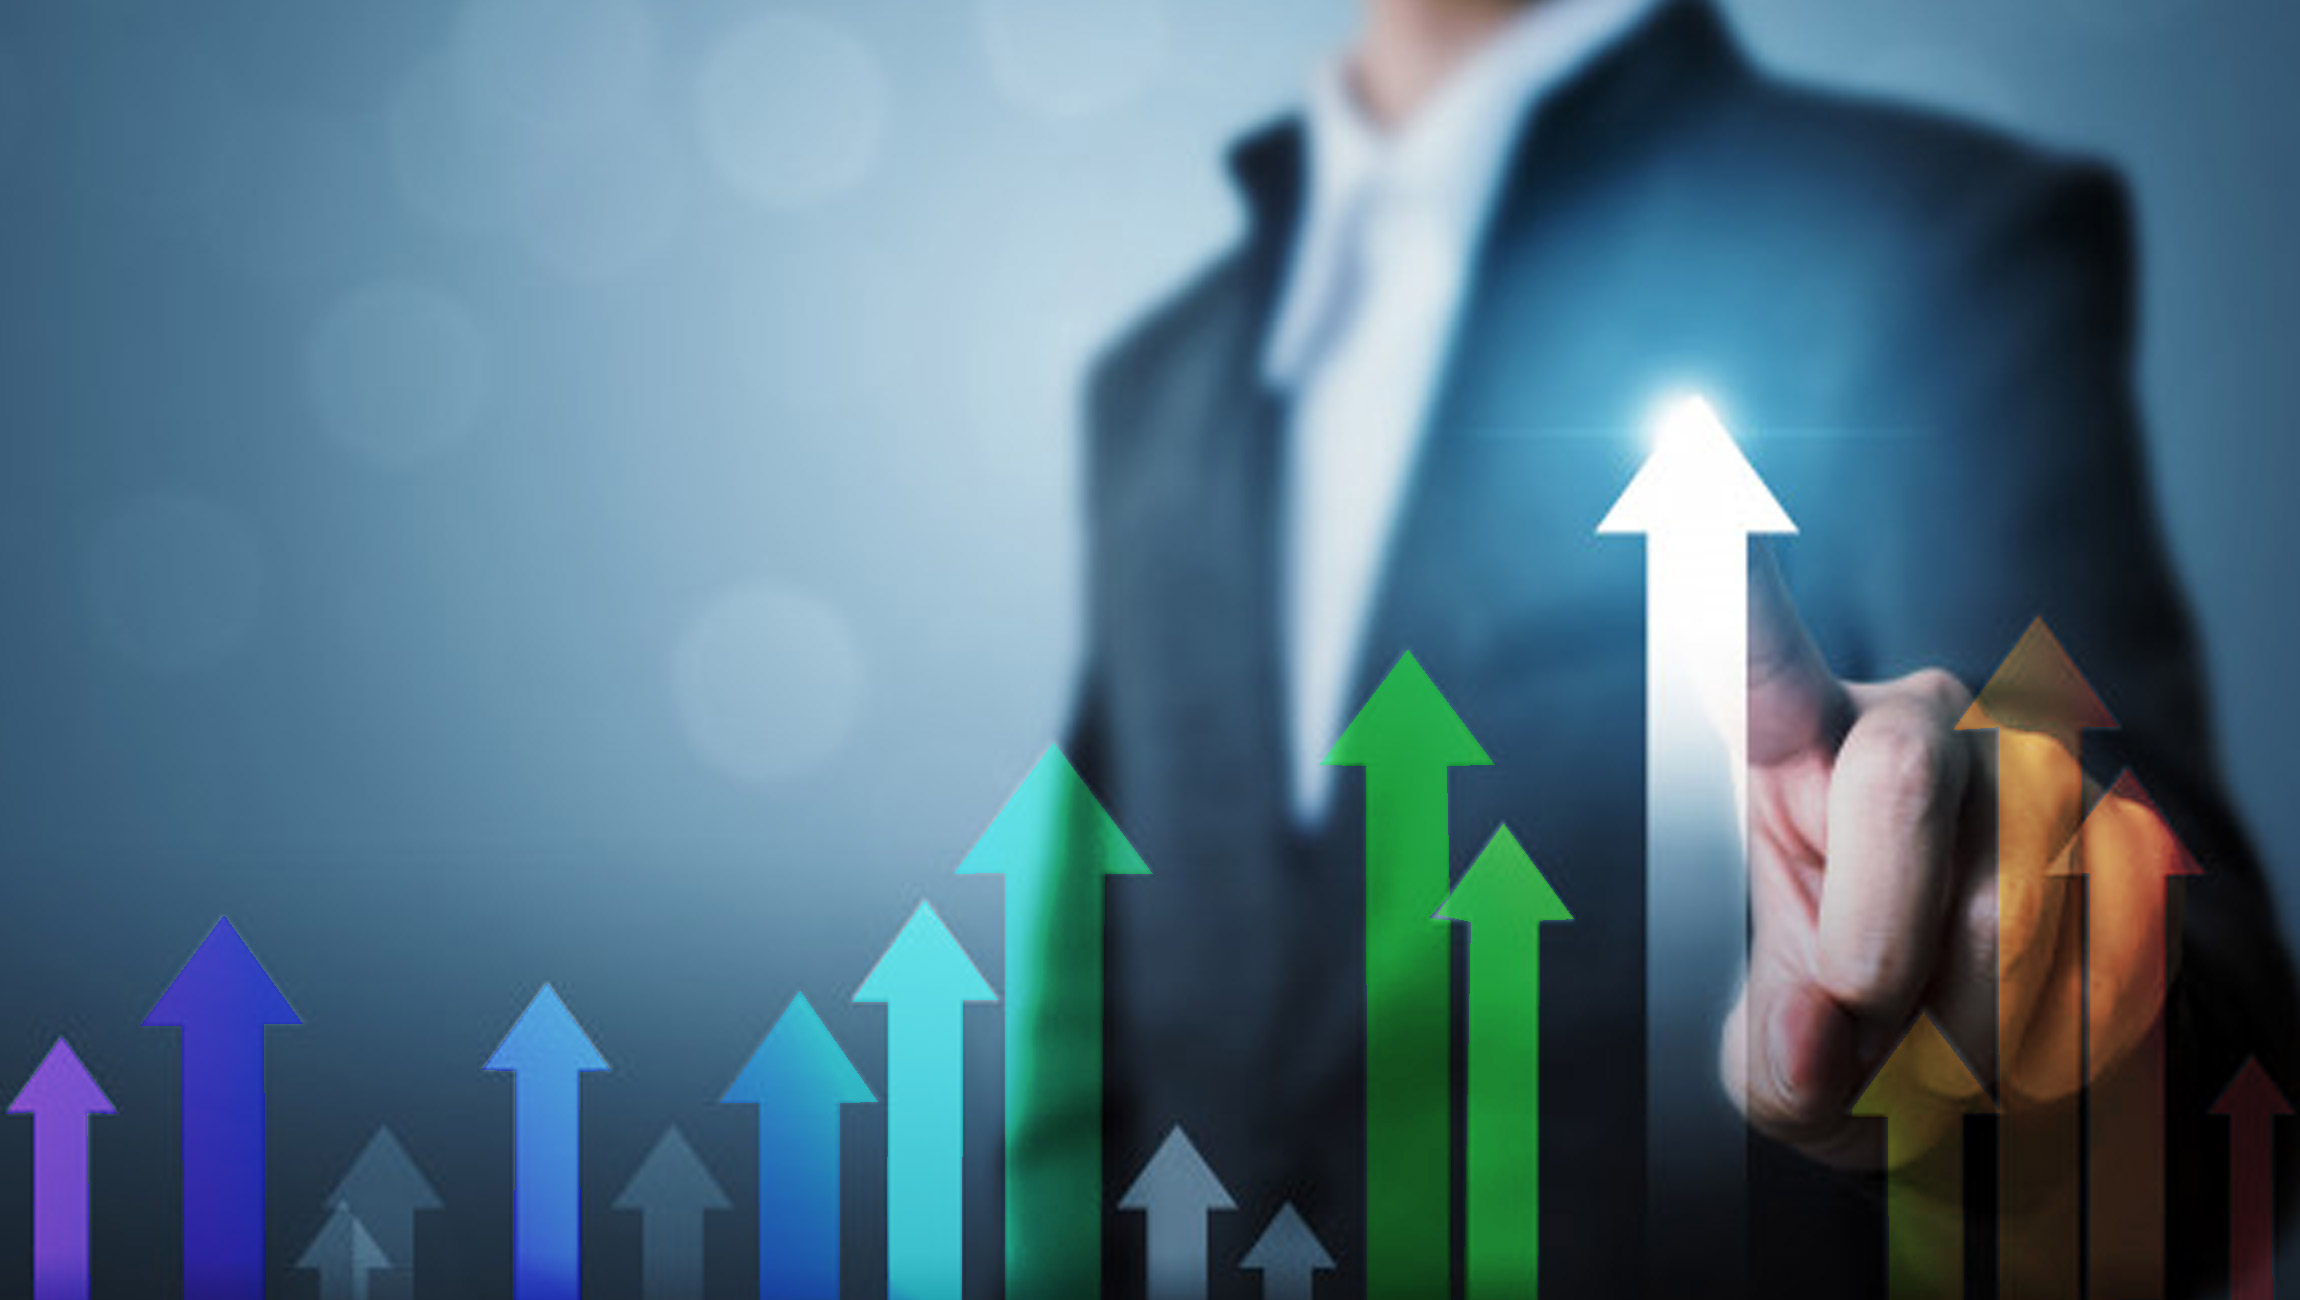 Sales Organizations Can Follow Repeatable Paths to Their Goals